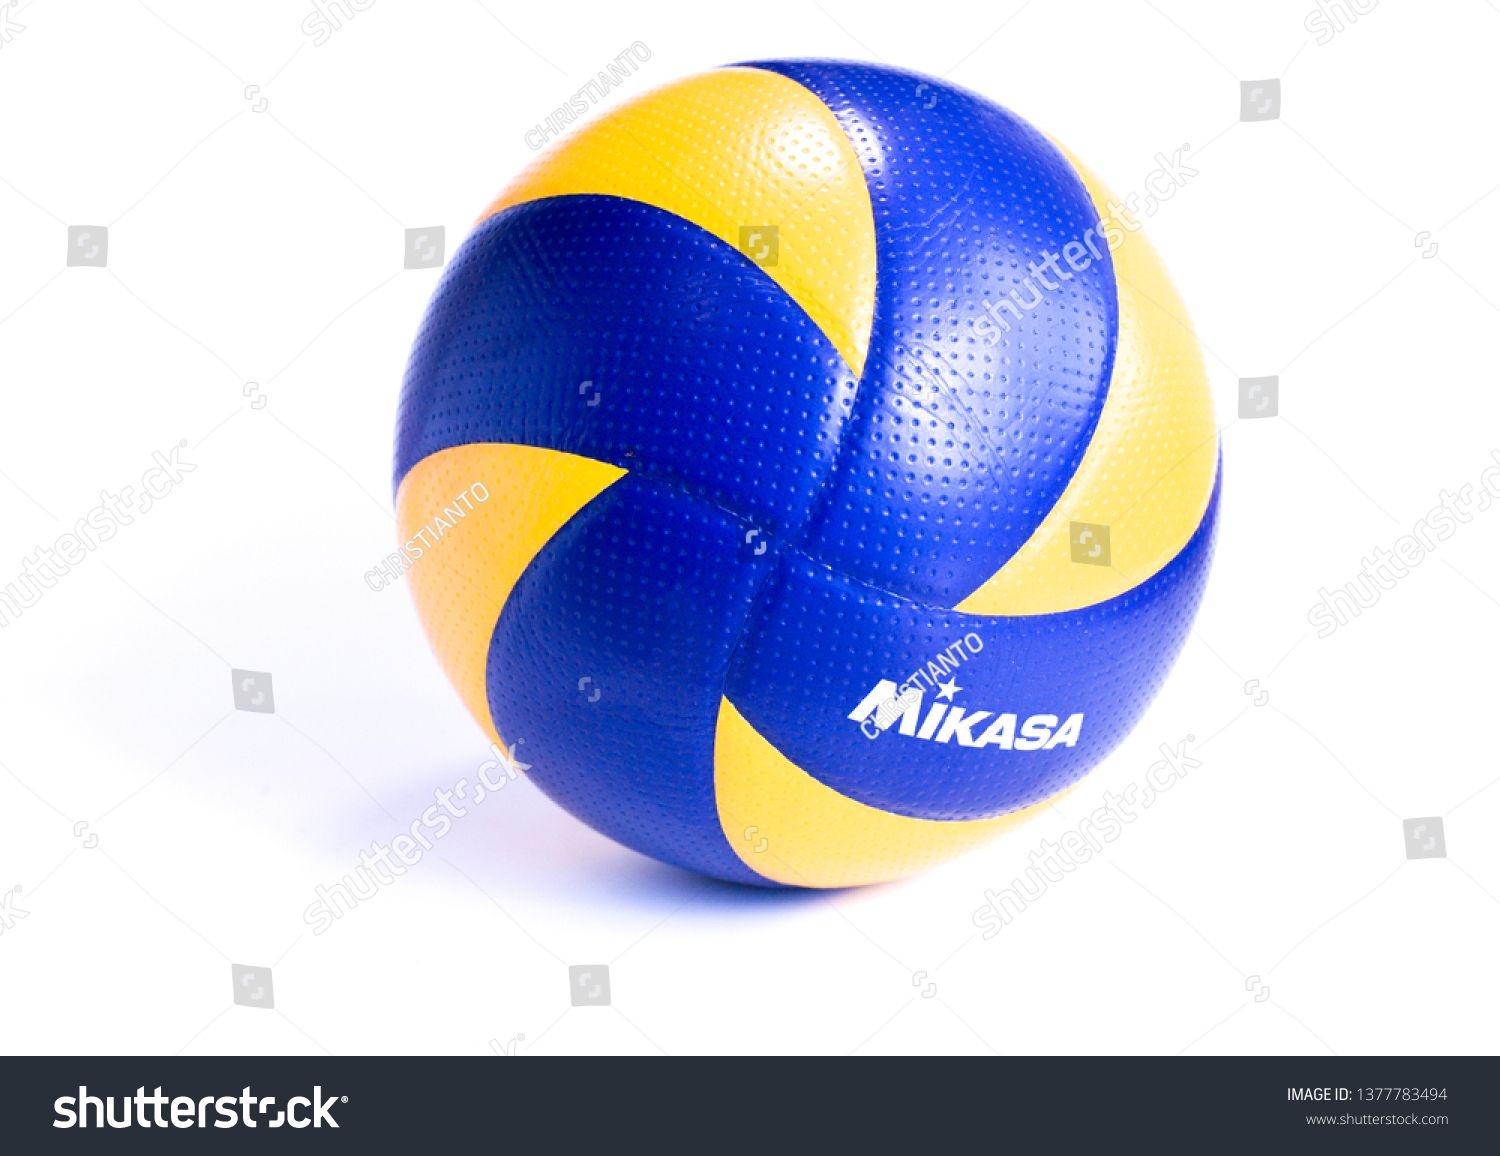 Kudat Malaysia 23 April 2019 Mikasa Indoor Volleyball Ball Isolated On White Background Mikasa Is World Top Brand I Kudat Indoor Volleyball Photo Editing